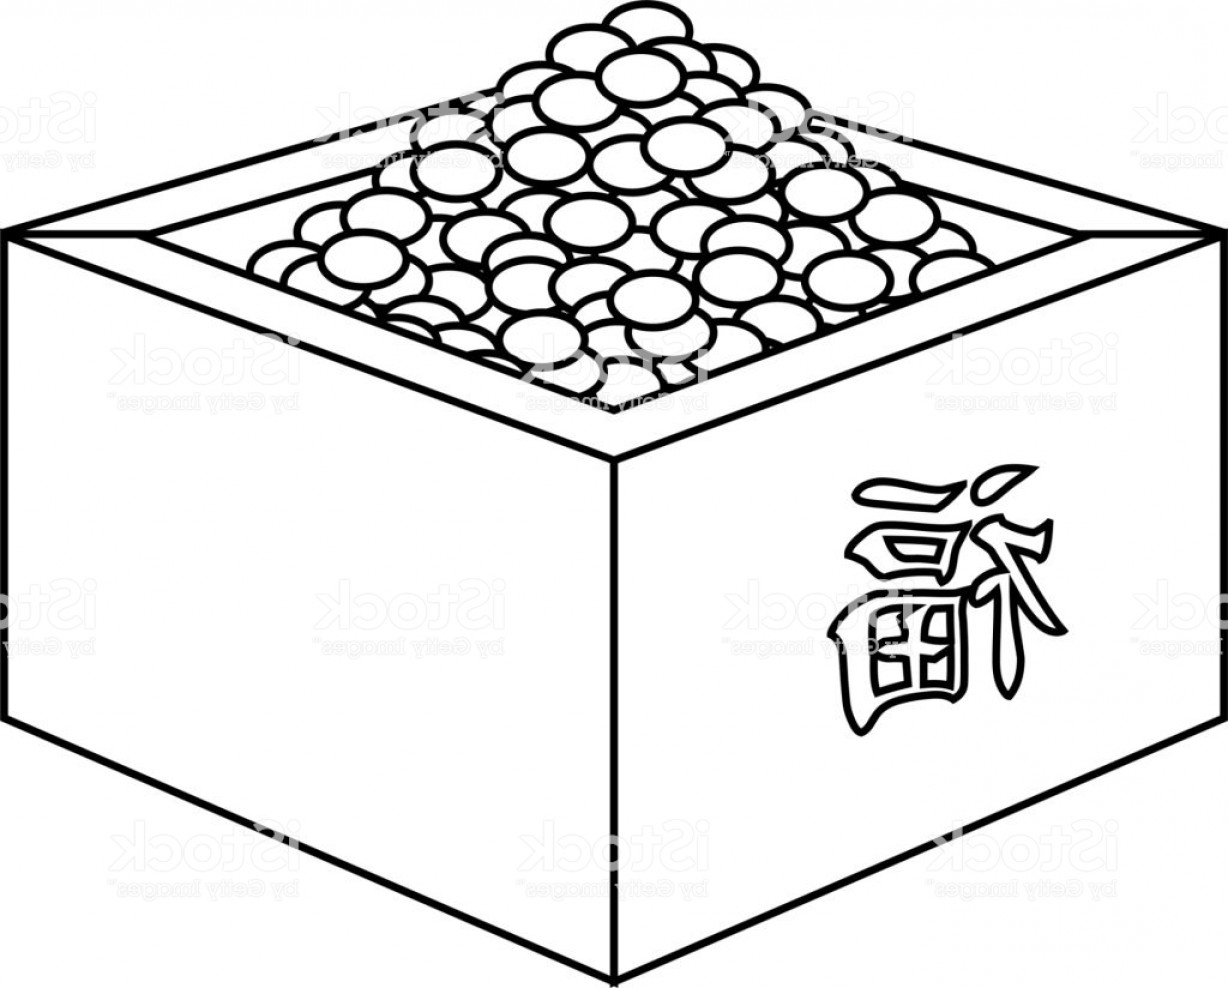 Box Outline Vector: Beans Of Japanese Setsubun Went Into Measuring Box Outline Gm